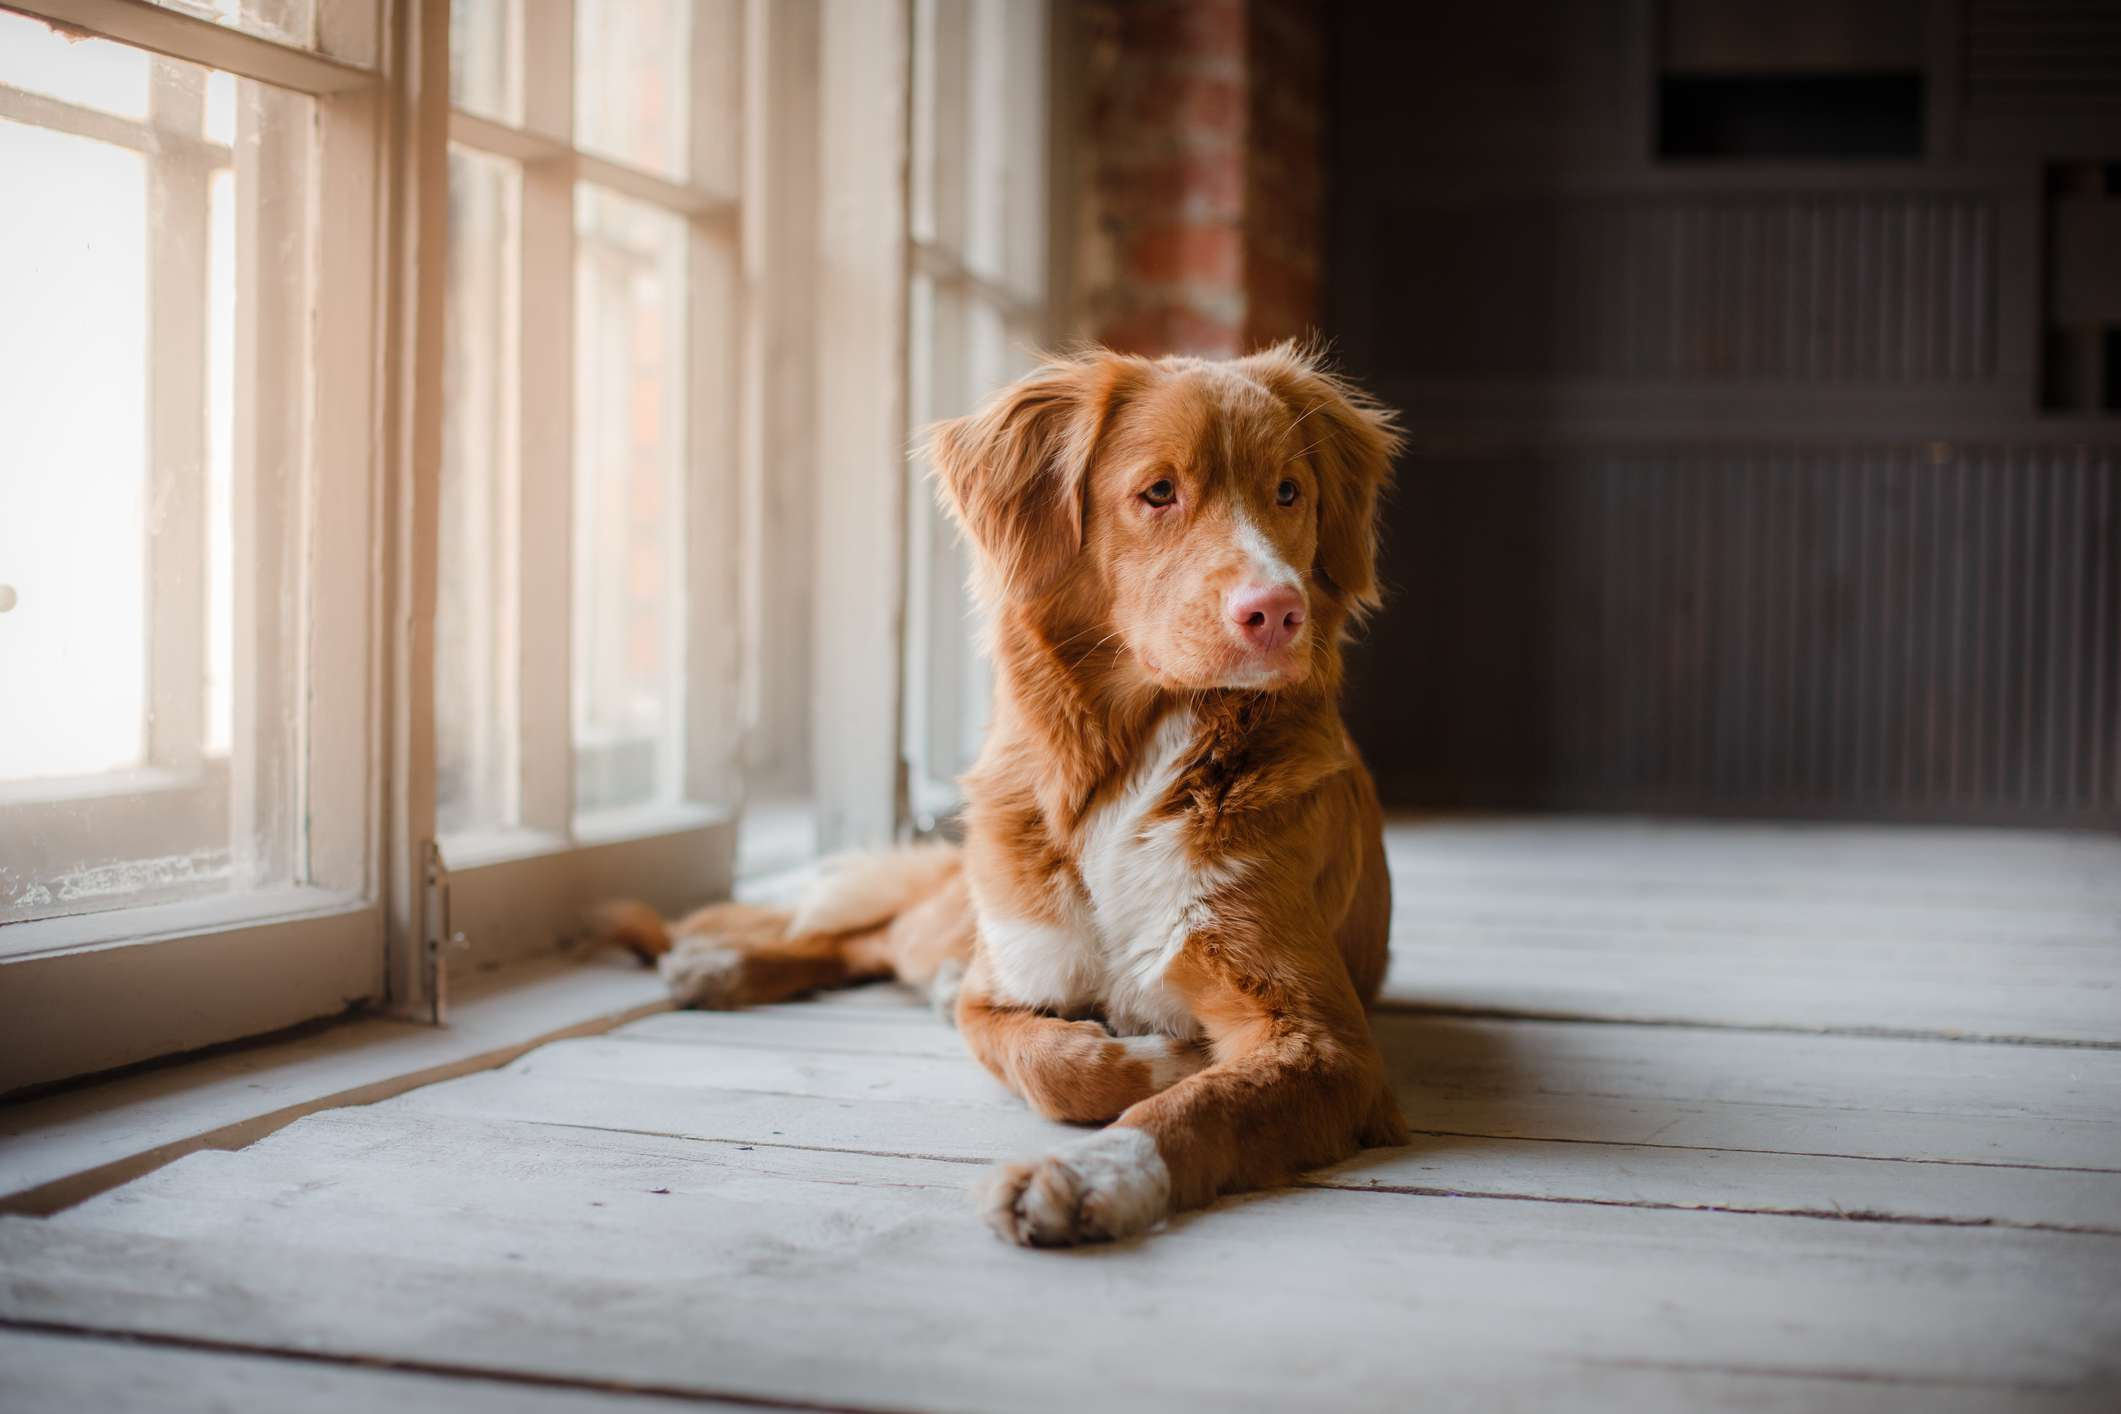 Toller laying down inside on wood floor by windows.